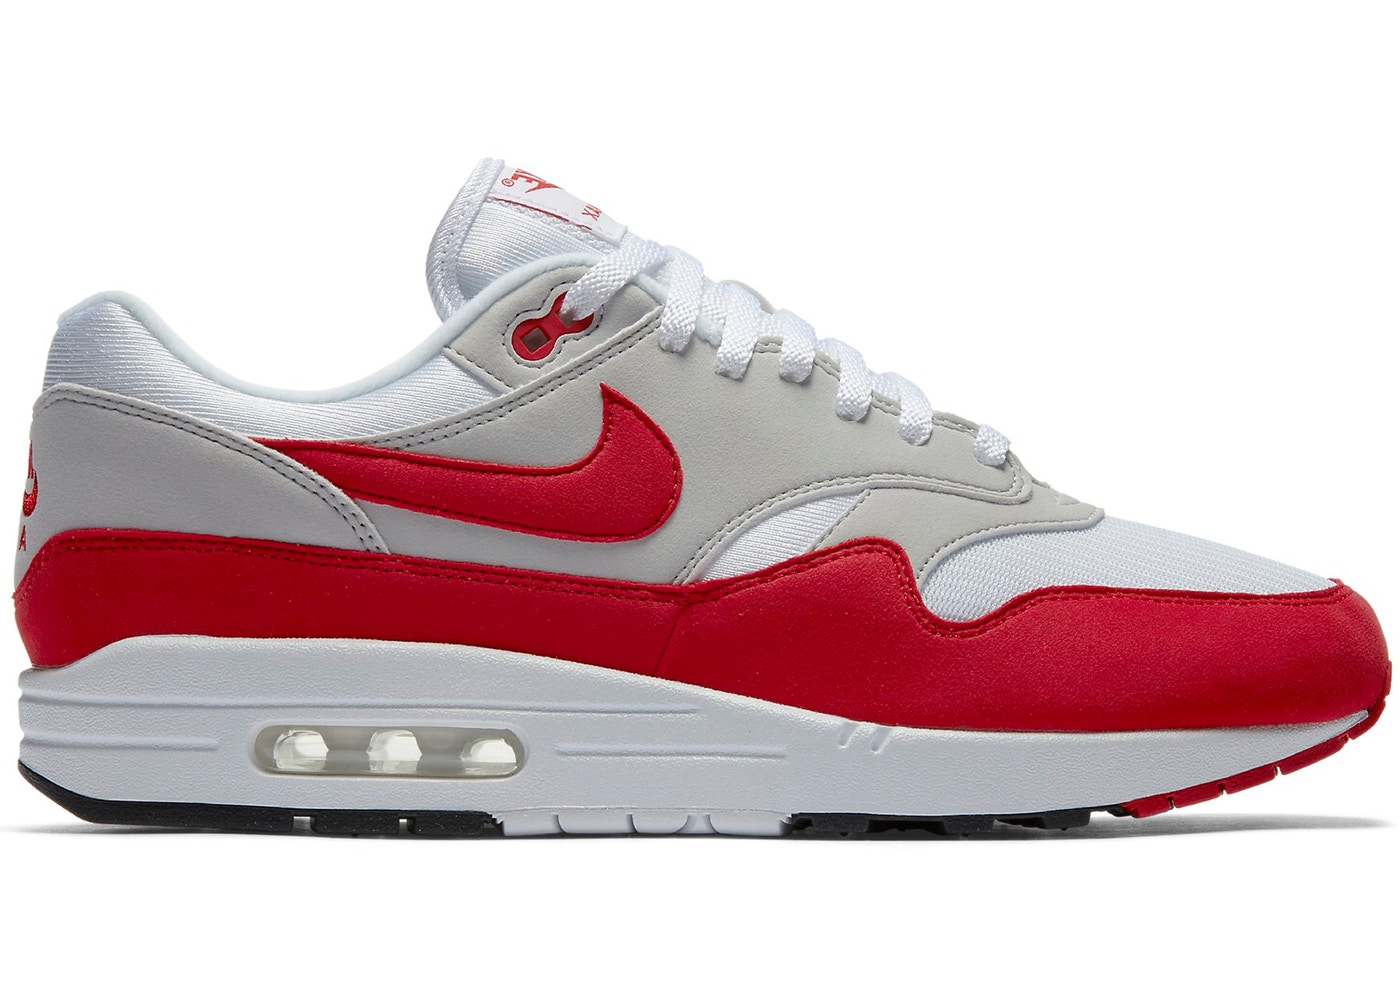 a5db1bffd3a7 Air Max 1 Anniversary Red (2017) - 908375-100